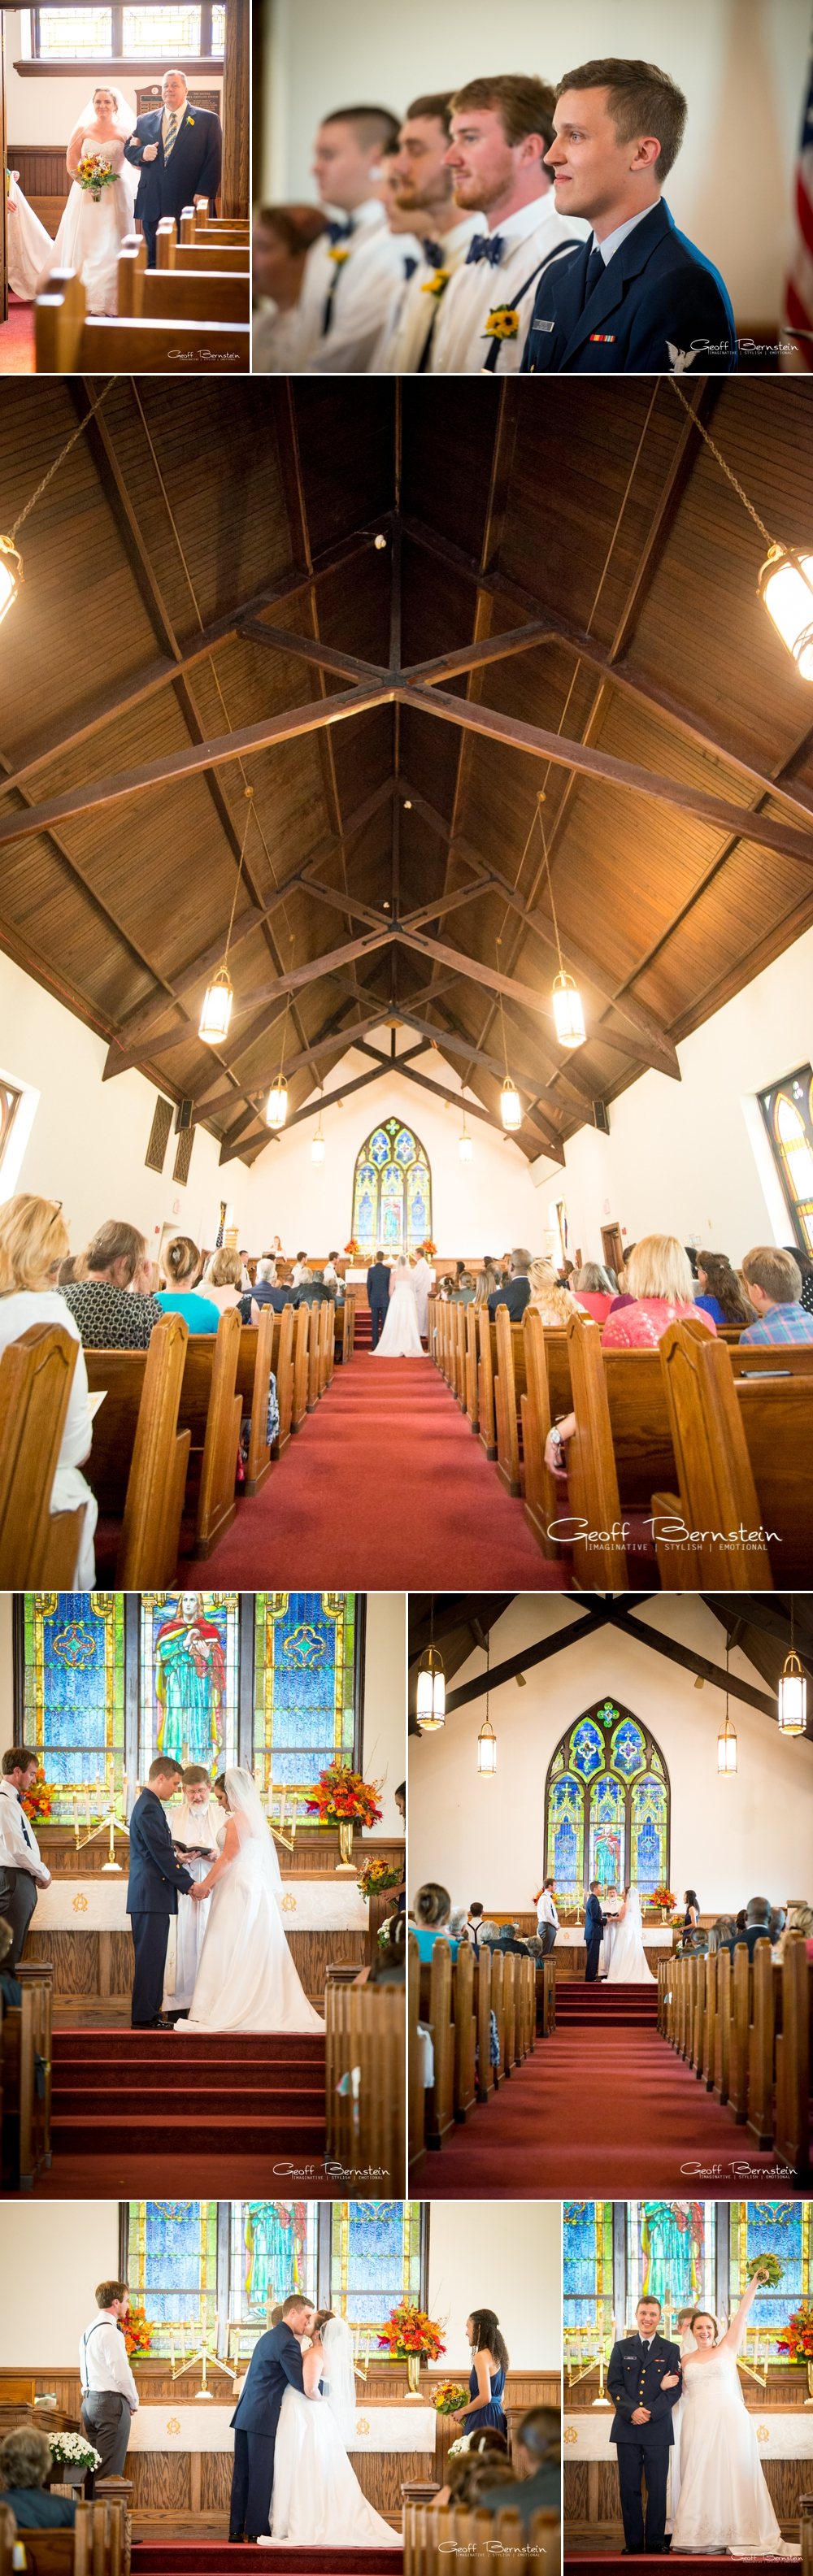 Gibson Medford Wedding Collage 5.jpg